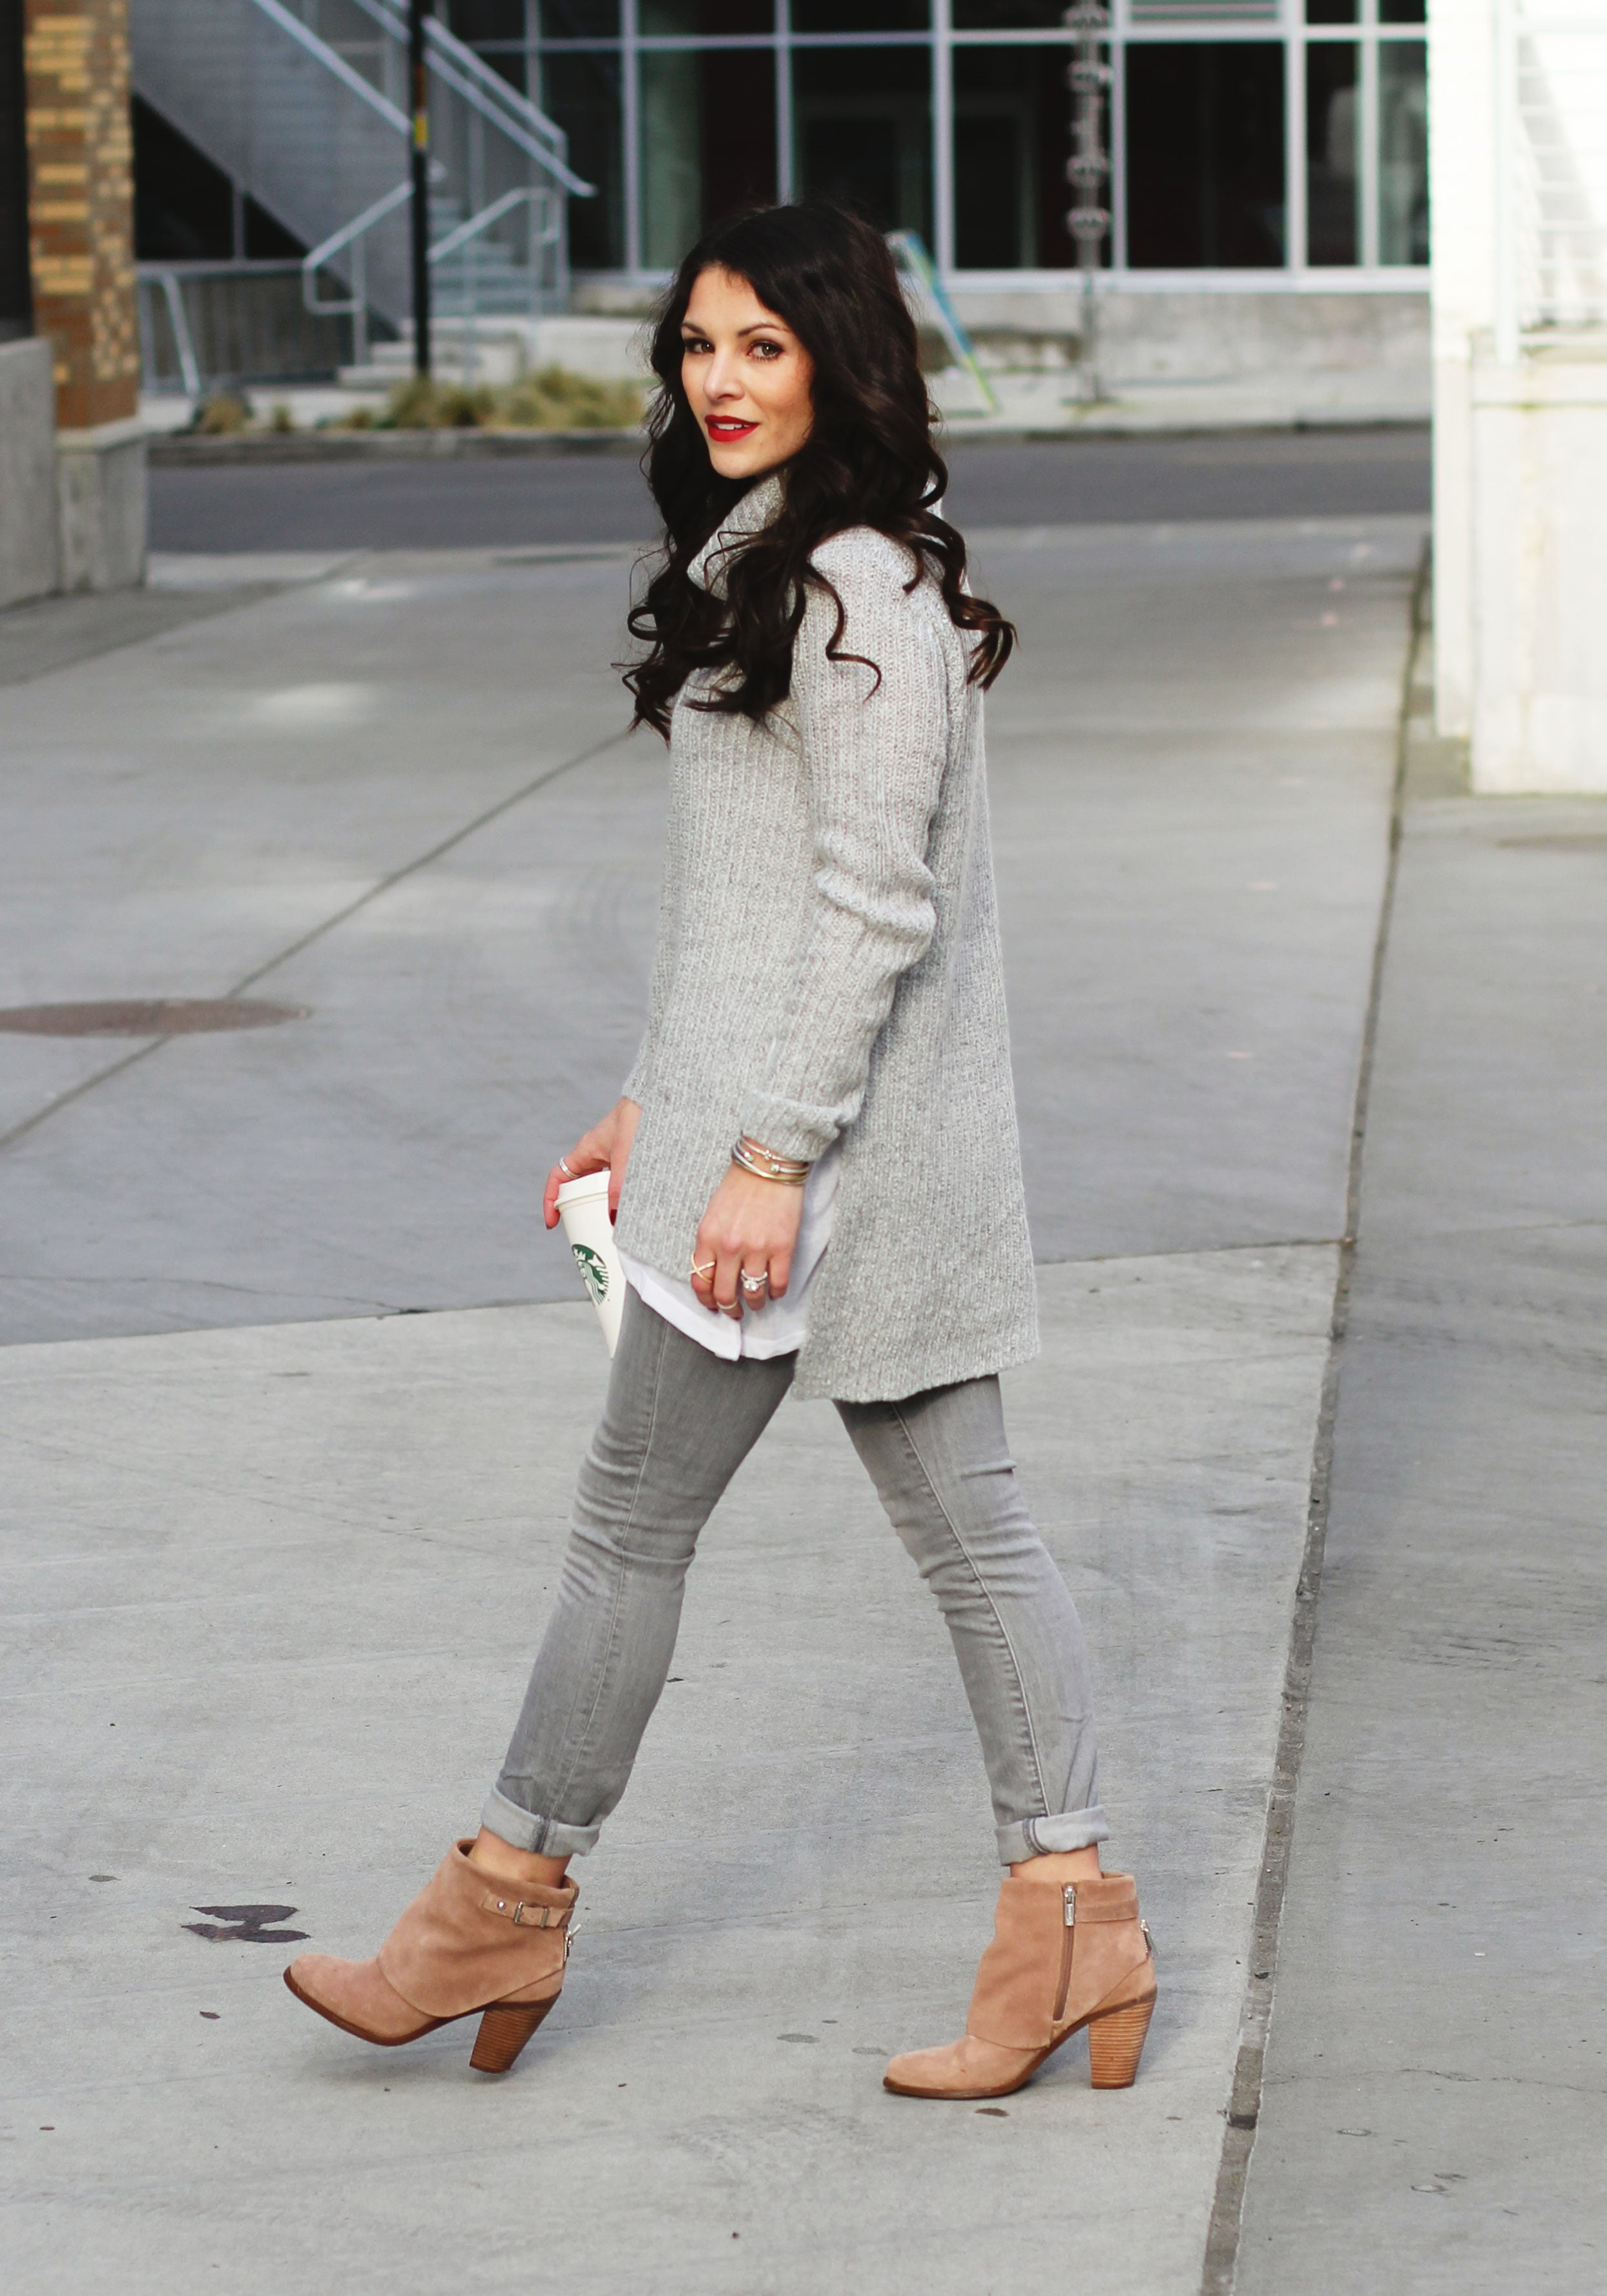 Winter Gray Outfit, Groutfit, Gray Turtleneck Sweater, GAP Gray Skinny Jeans, Jessica Simpson Cassley Covered Booties, David Yurman Bracelets